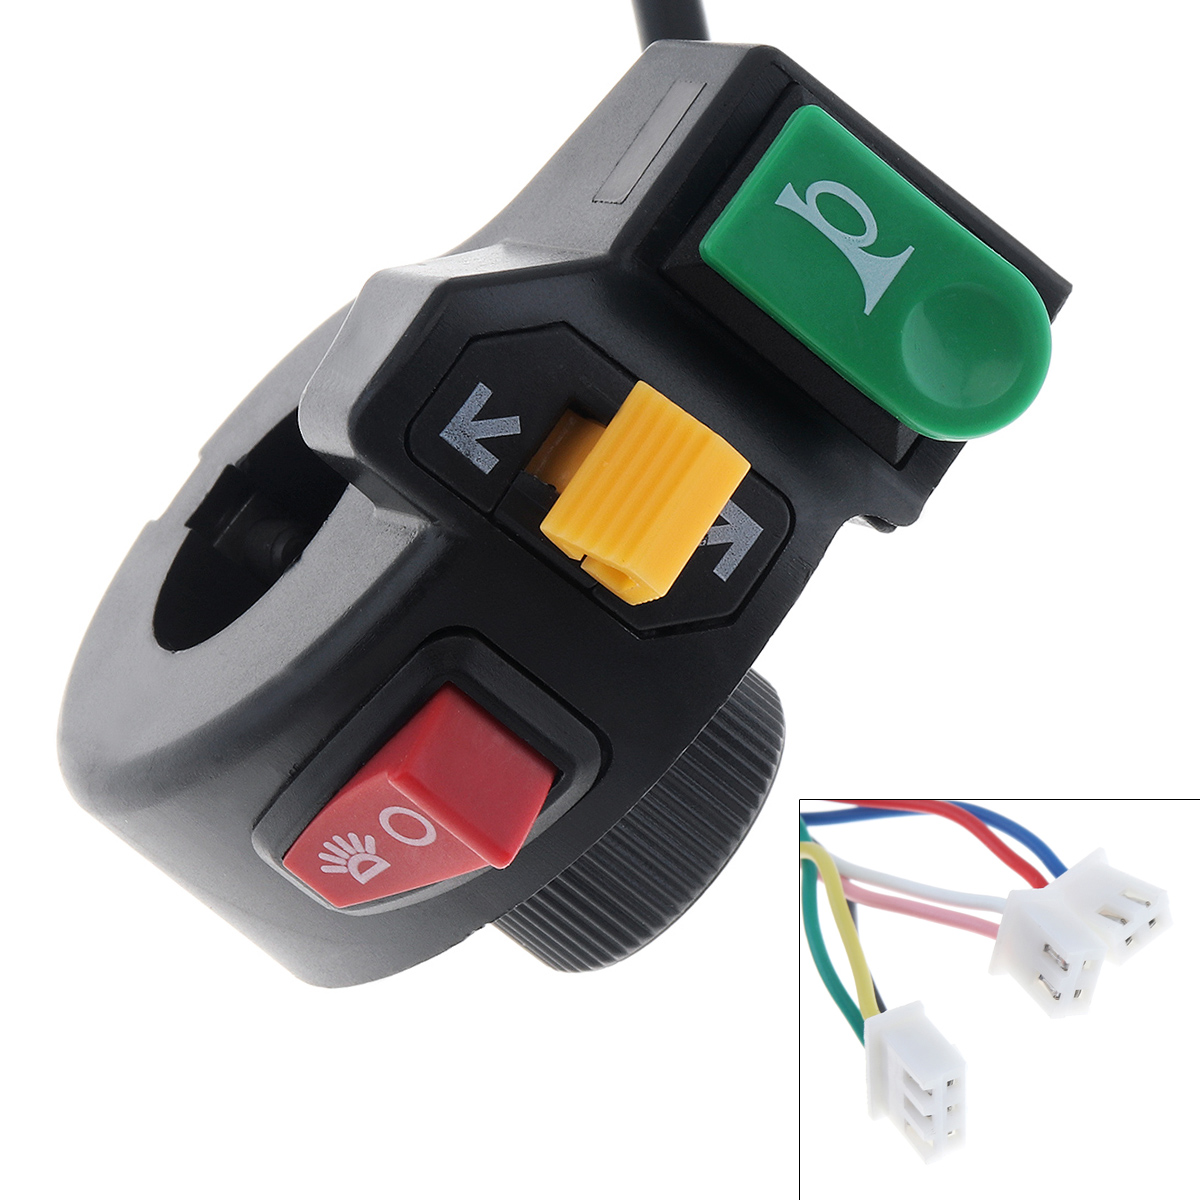 3 in 1 Motorcycle <font><b>Switch</b></font> Electric Bike Scooter <font><b>ATV</b></font> Quad Light Turn Signal Horn ON/OFF Button for 22mm Dia Handlebars image